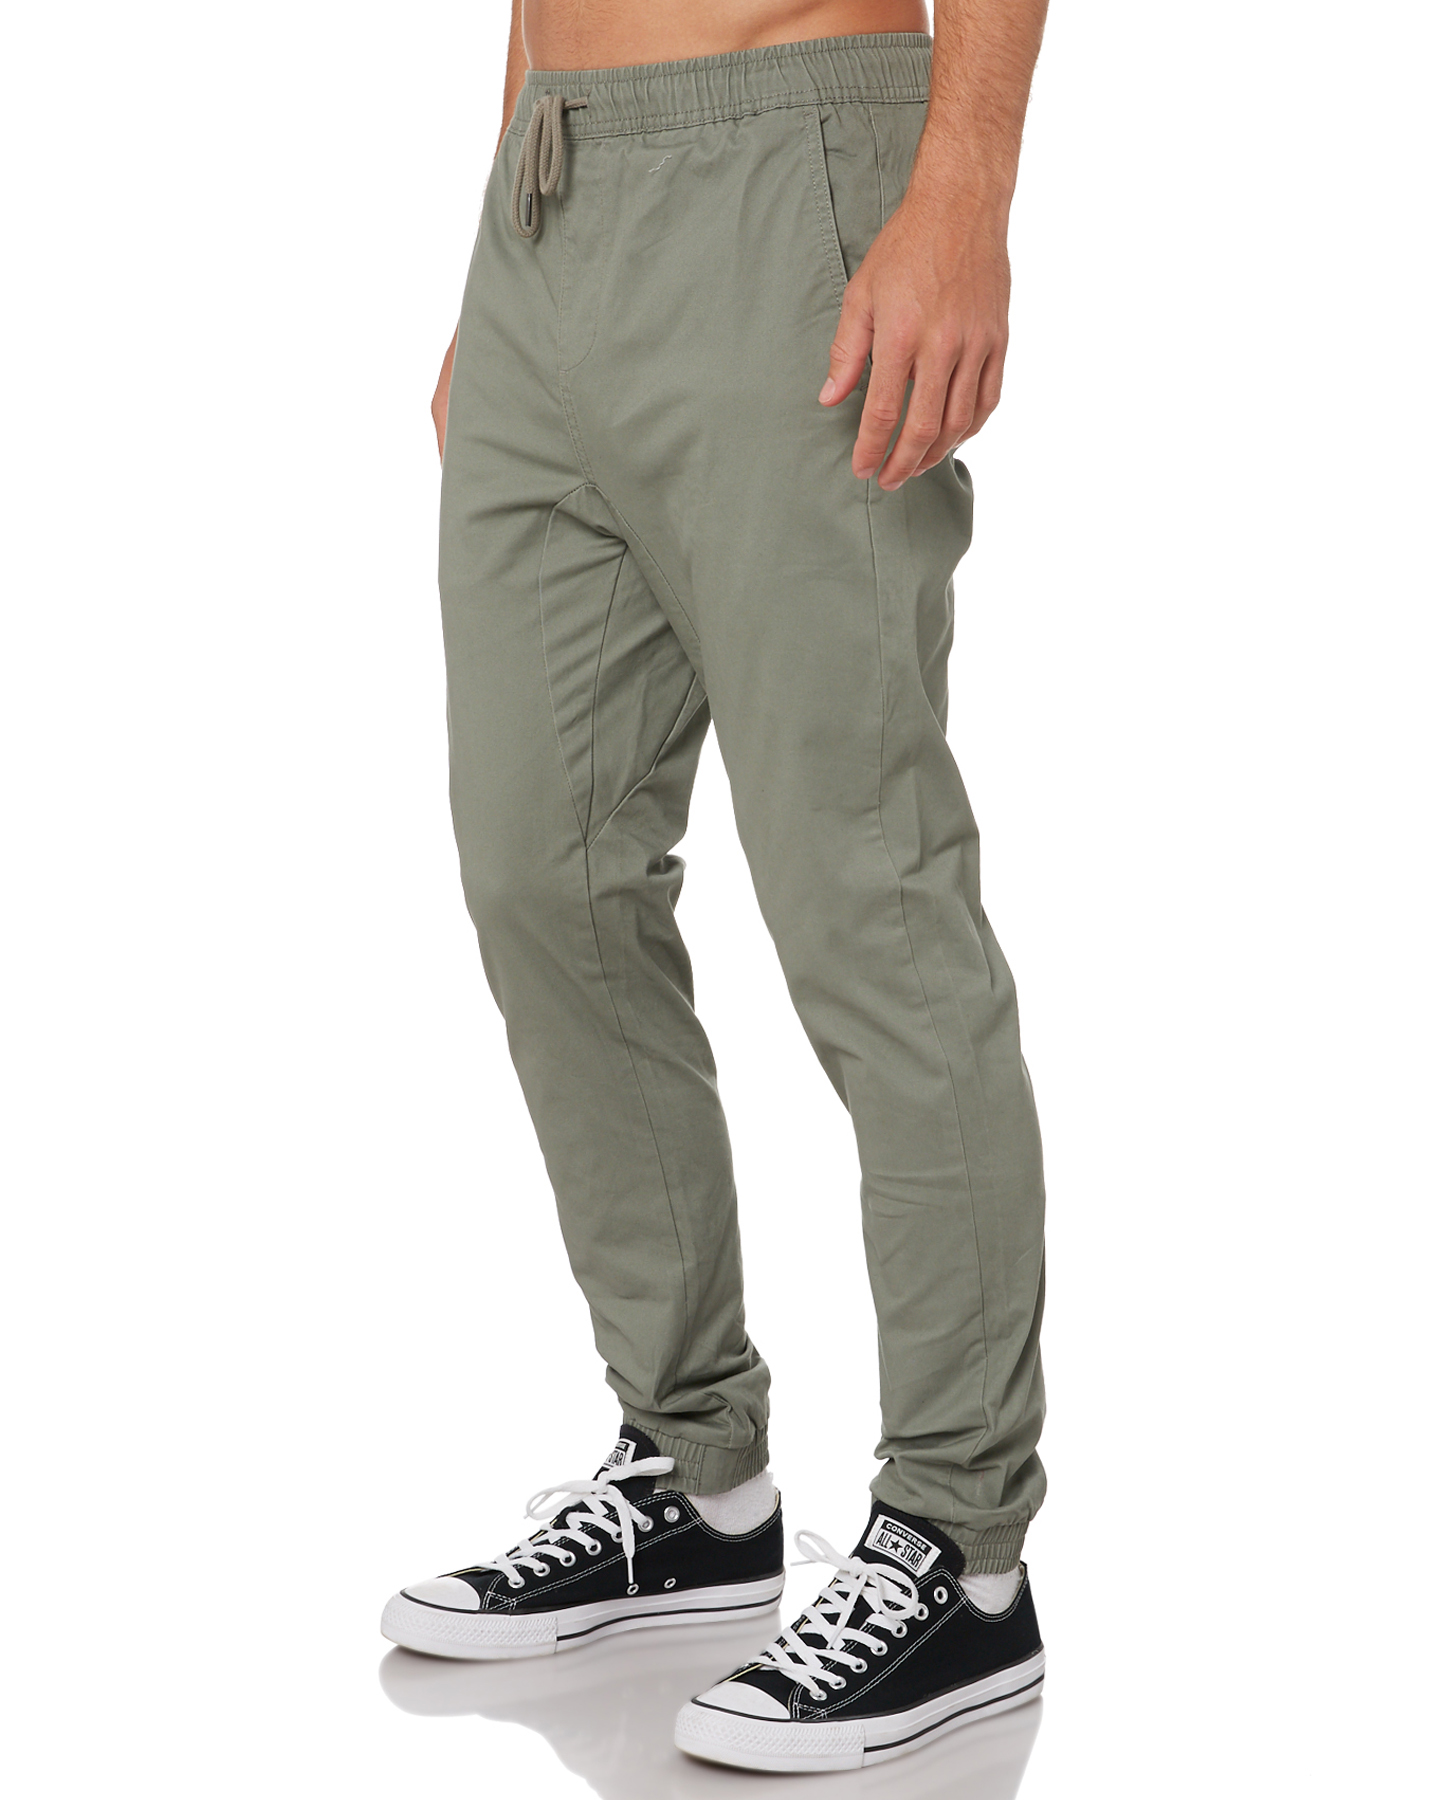 New-Swell-Men-039-s-Blunt-Cargo-Mens-Jogger-Pant-Cotton-Elastane-Green thumbnail 17